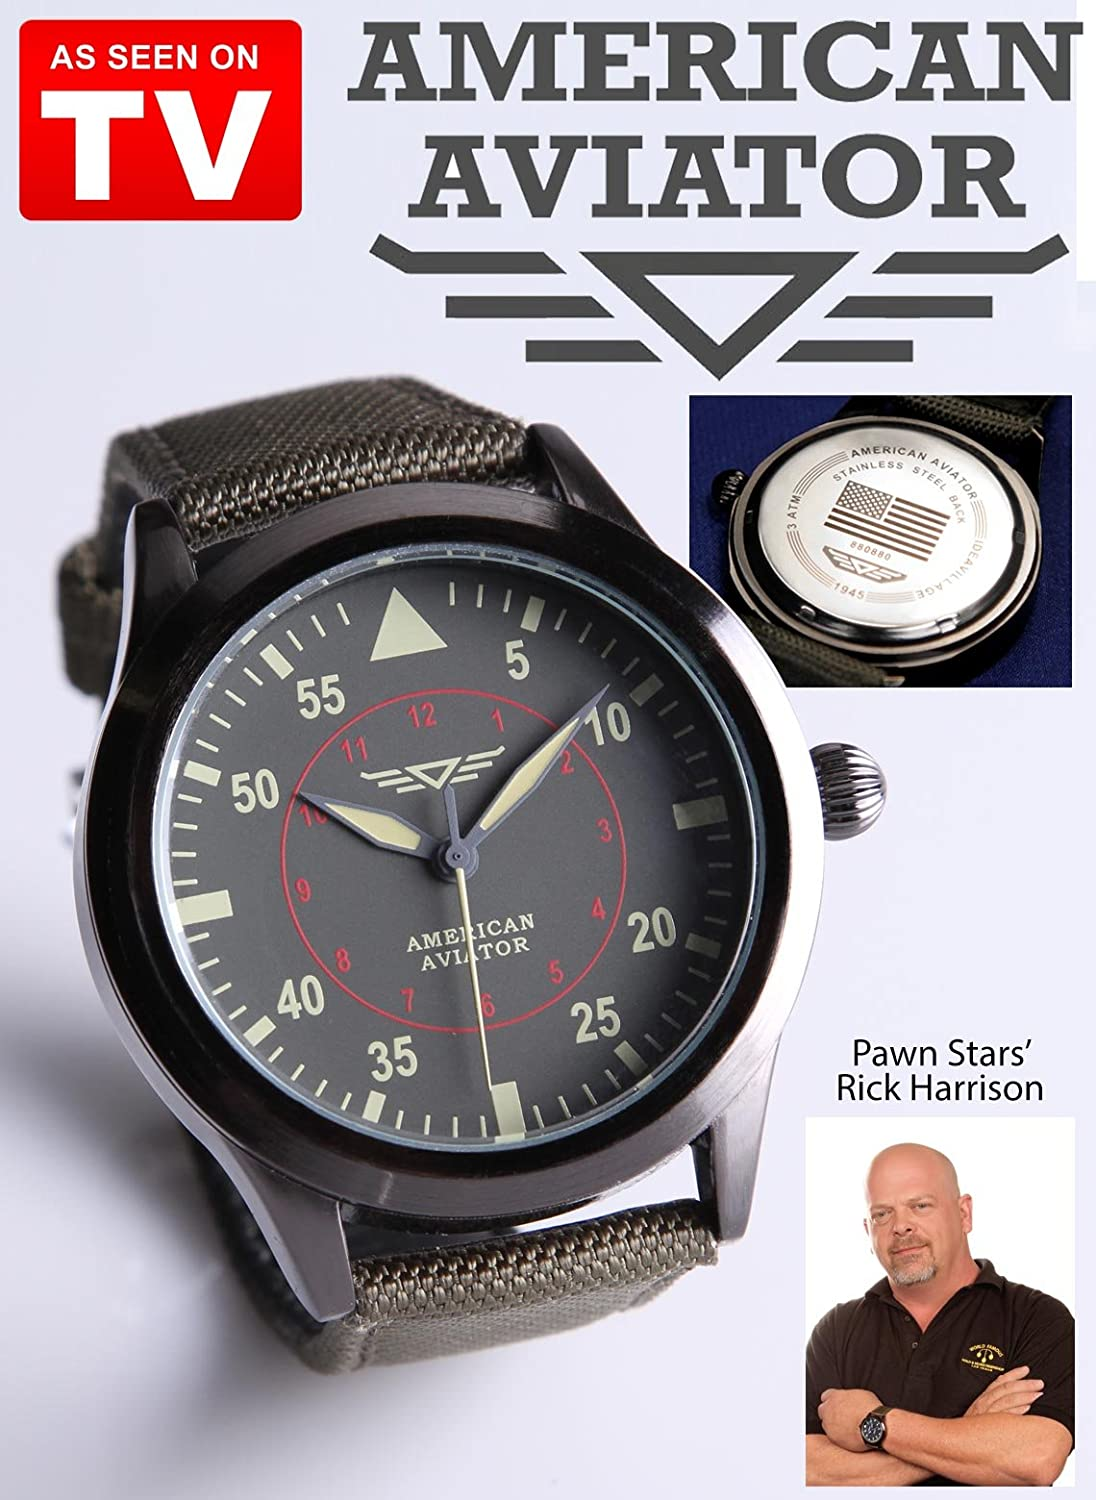 f aviator men carousell watches watch p fashion on series photo s